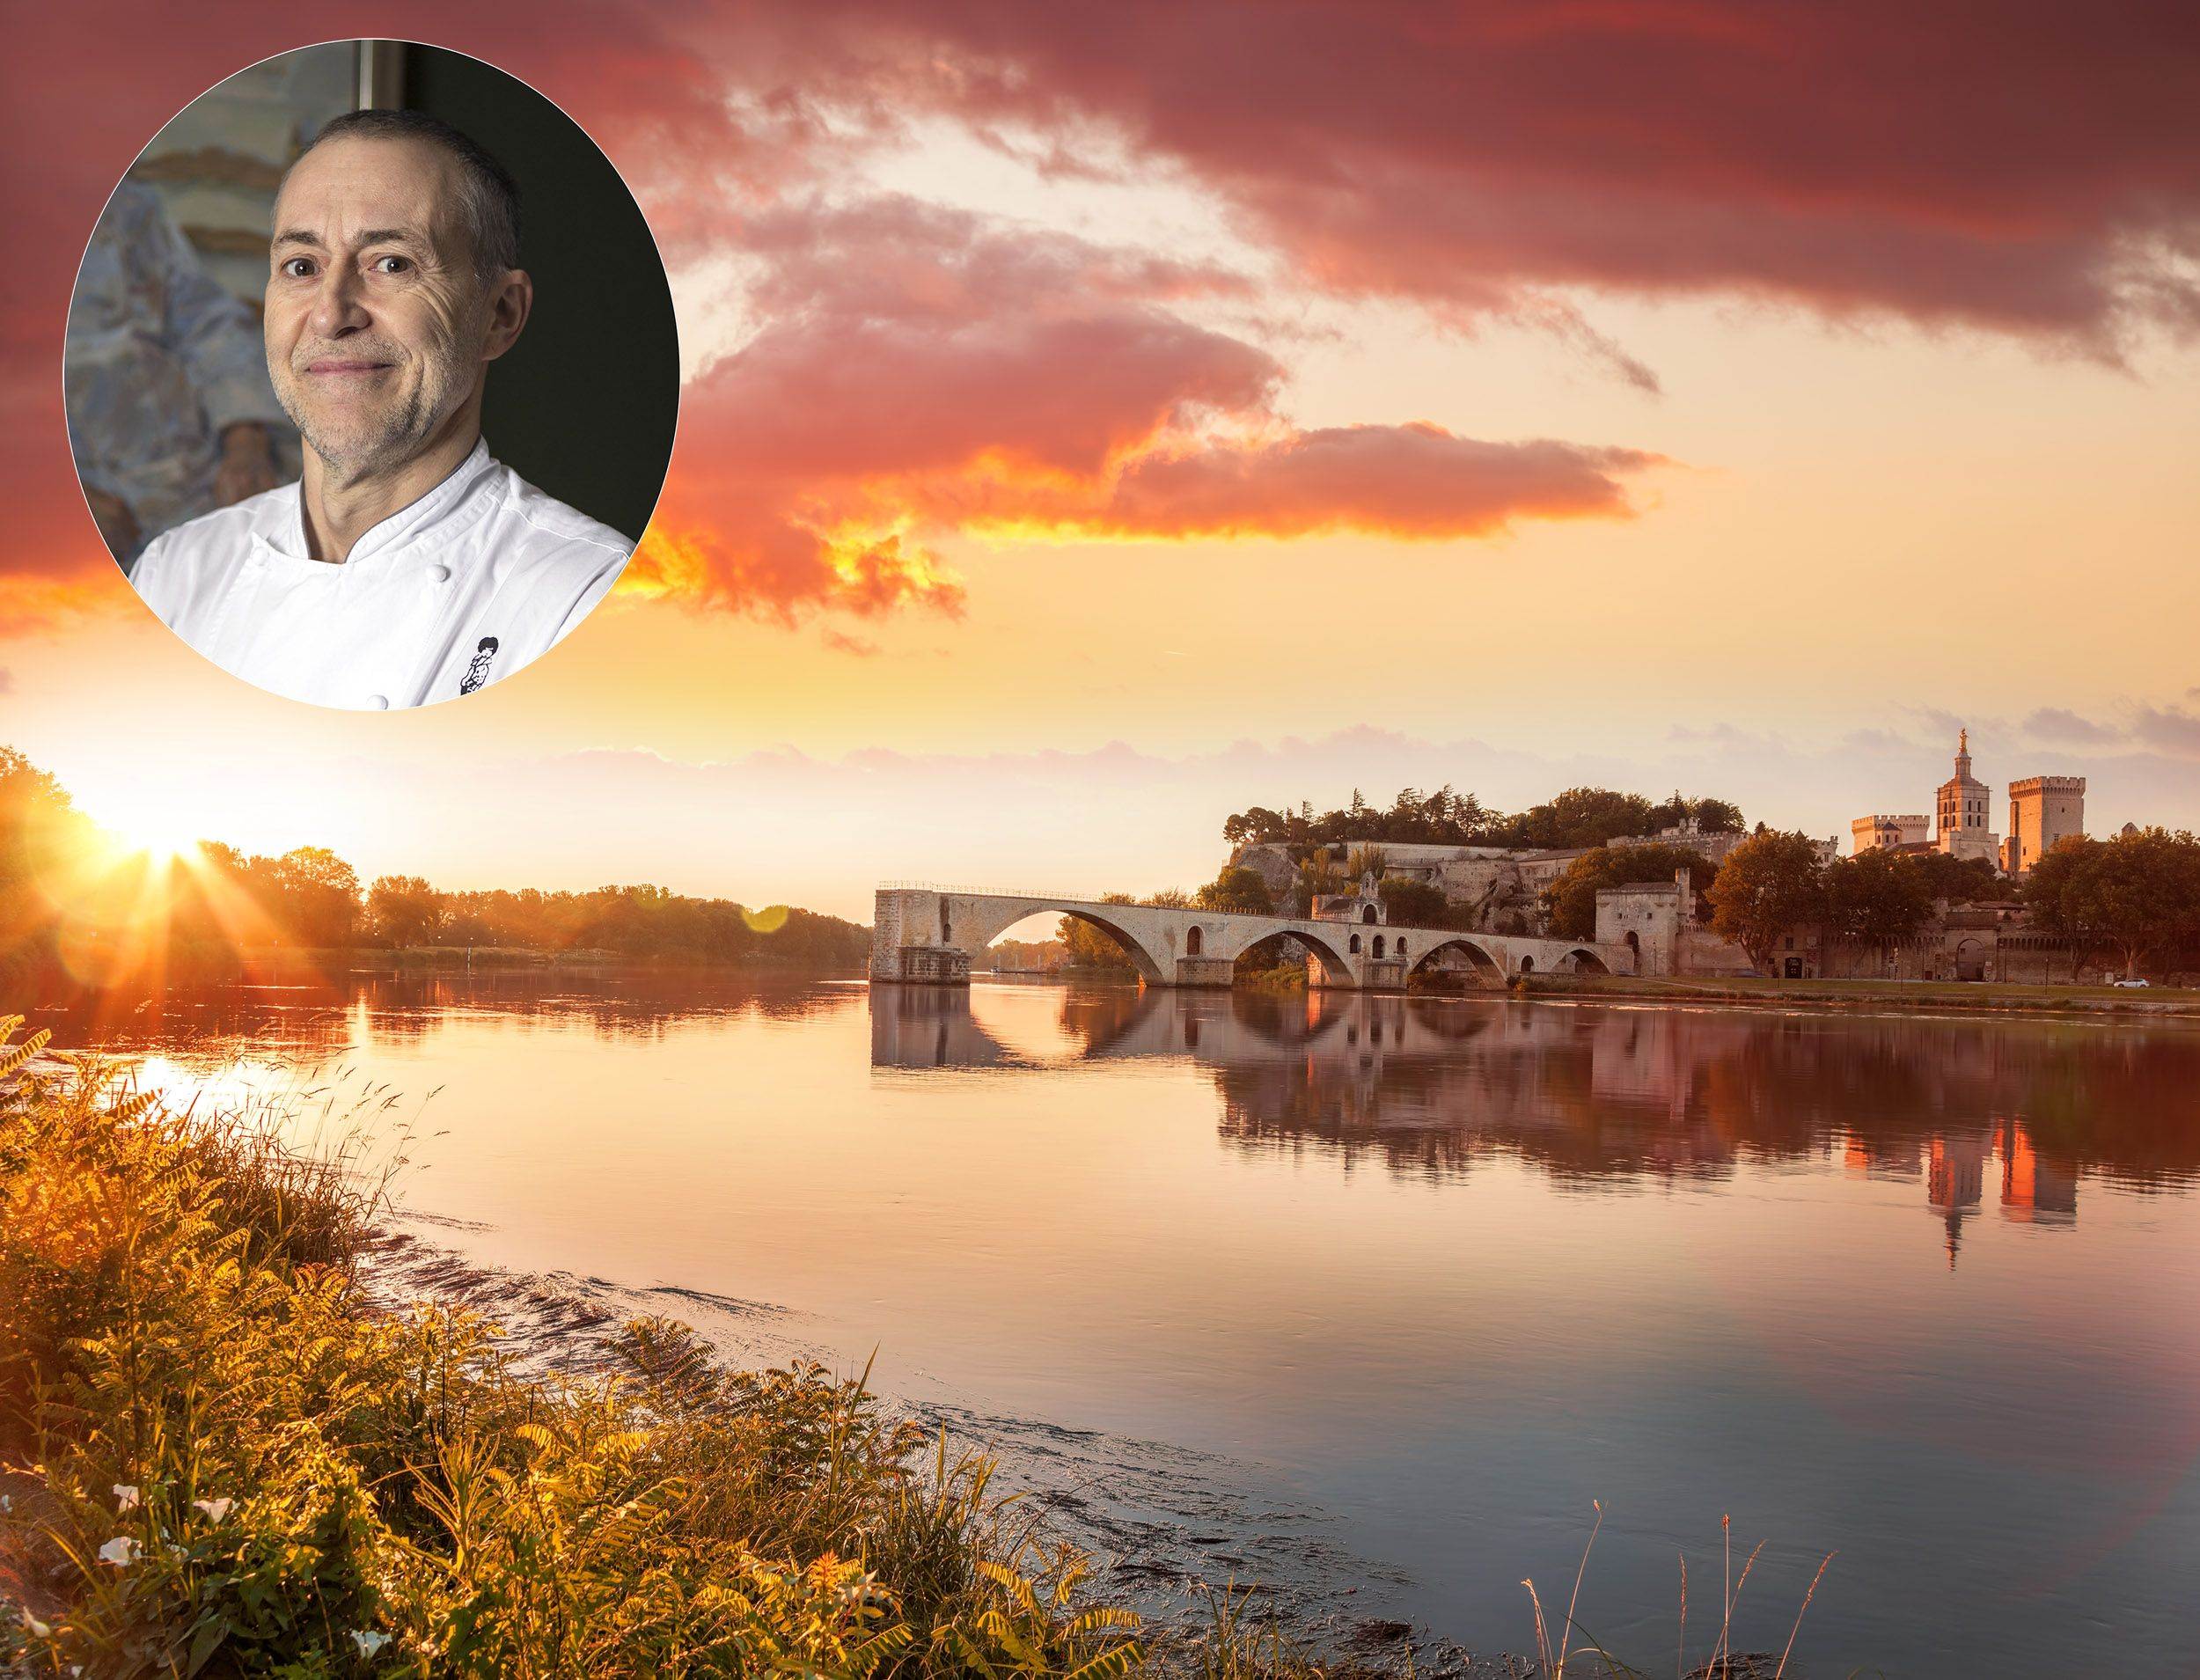 Taste the foodie treasures of France on a river cruise with Michel Roux Jr